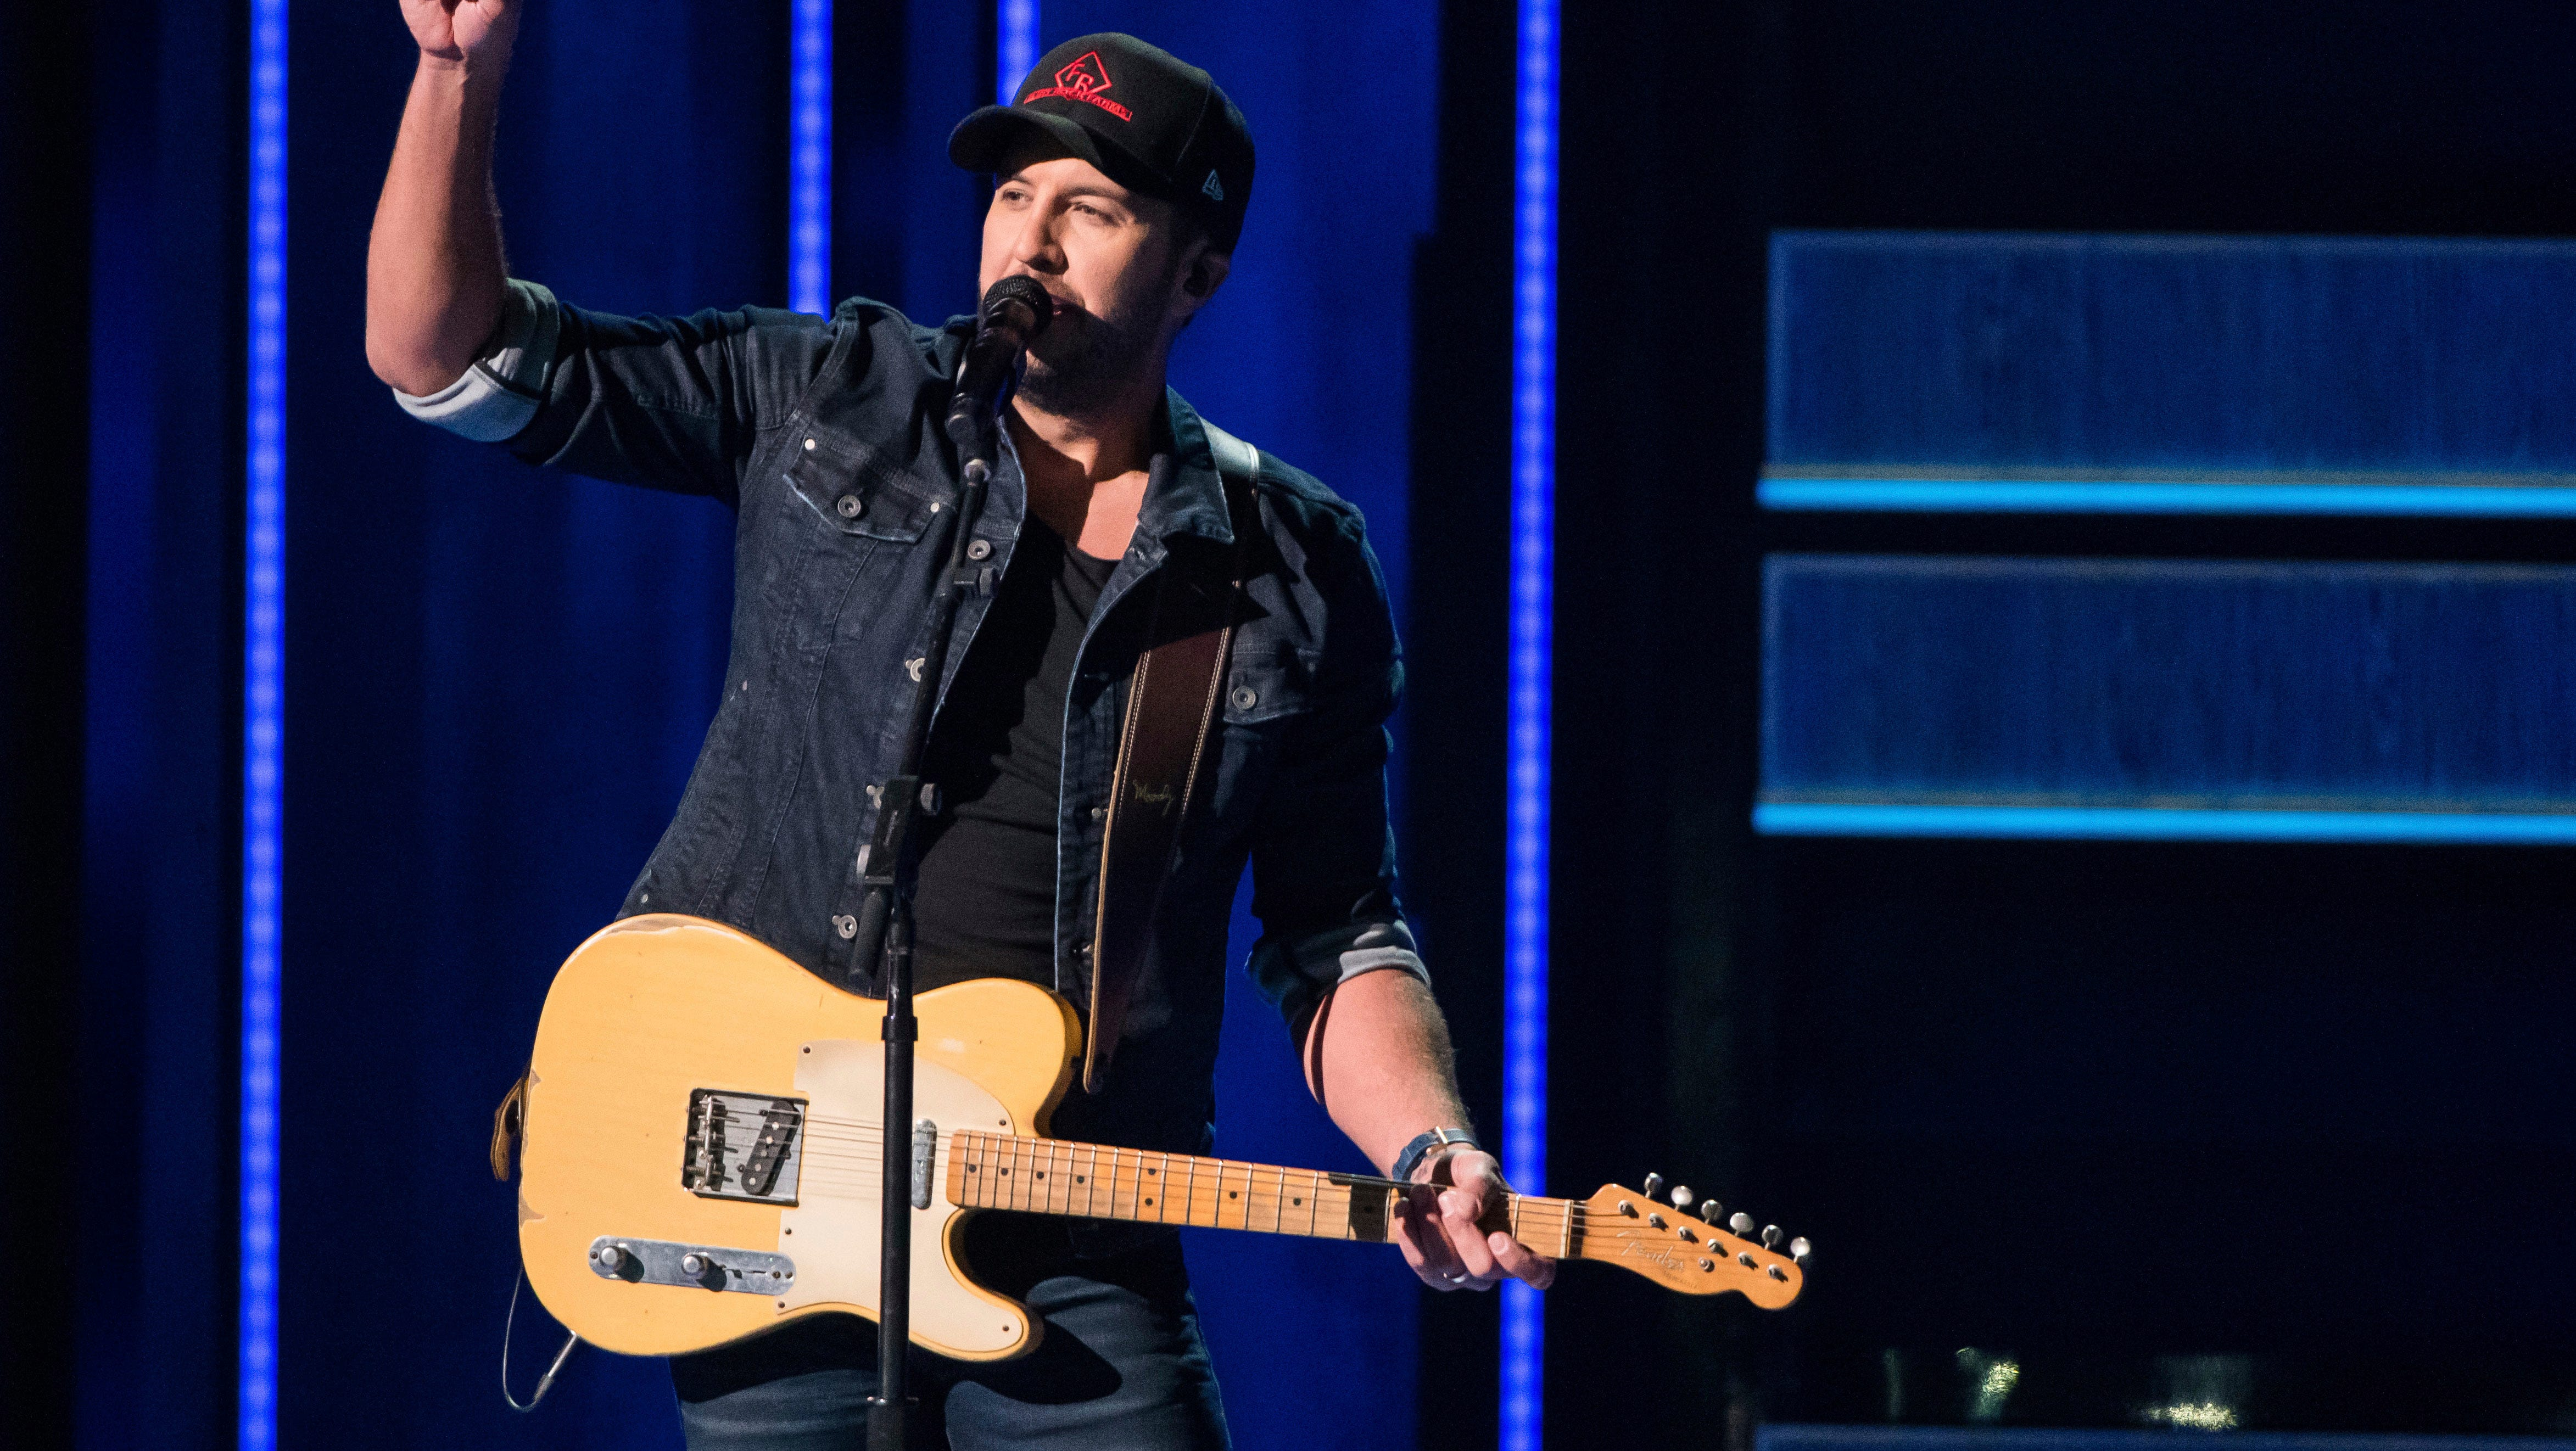 """Luke Bryan performs """"What Makes You Country"""" at the 52nd annual CMA Awards at Bridgestone Arena on Wednesday, Nov. 14, 2018, in Nashville, Tenn. (Photo by Charles Sykes/Invision/AP)"""